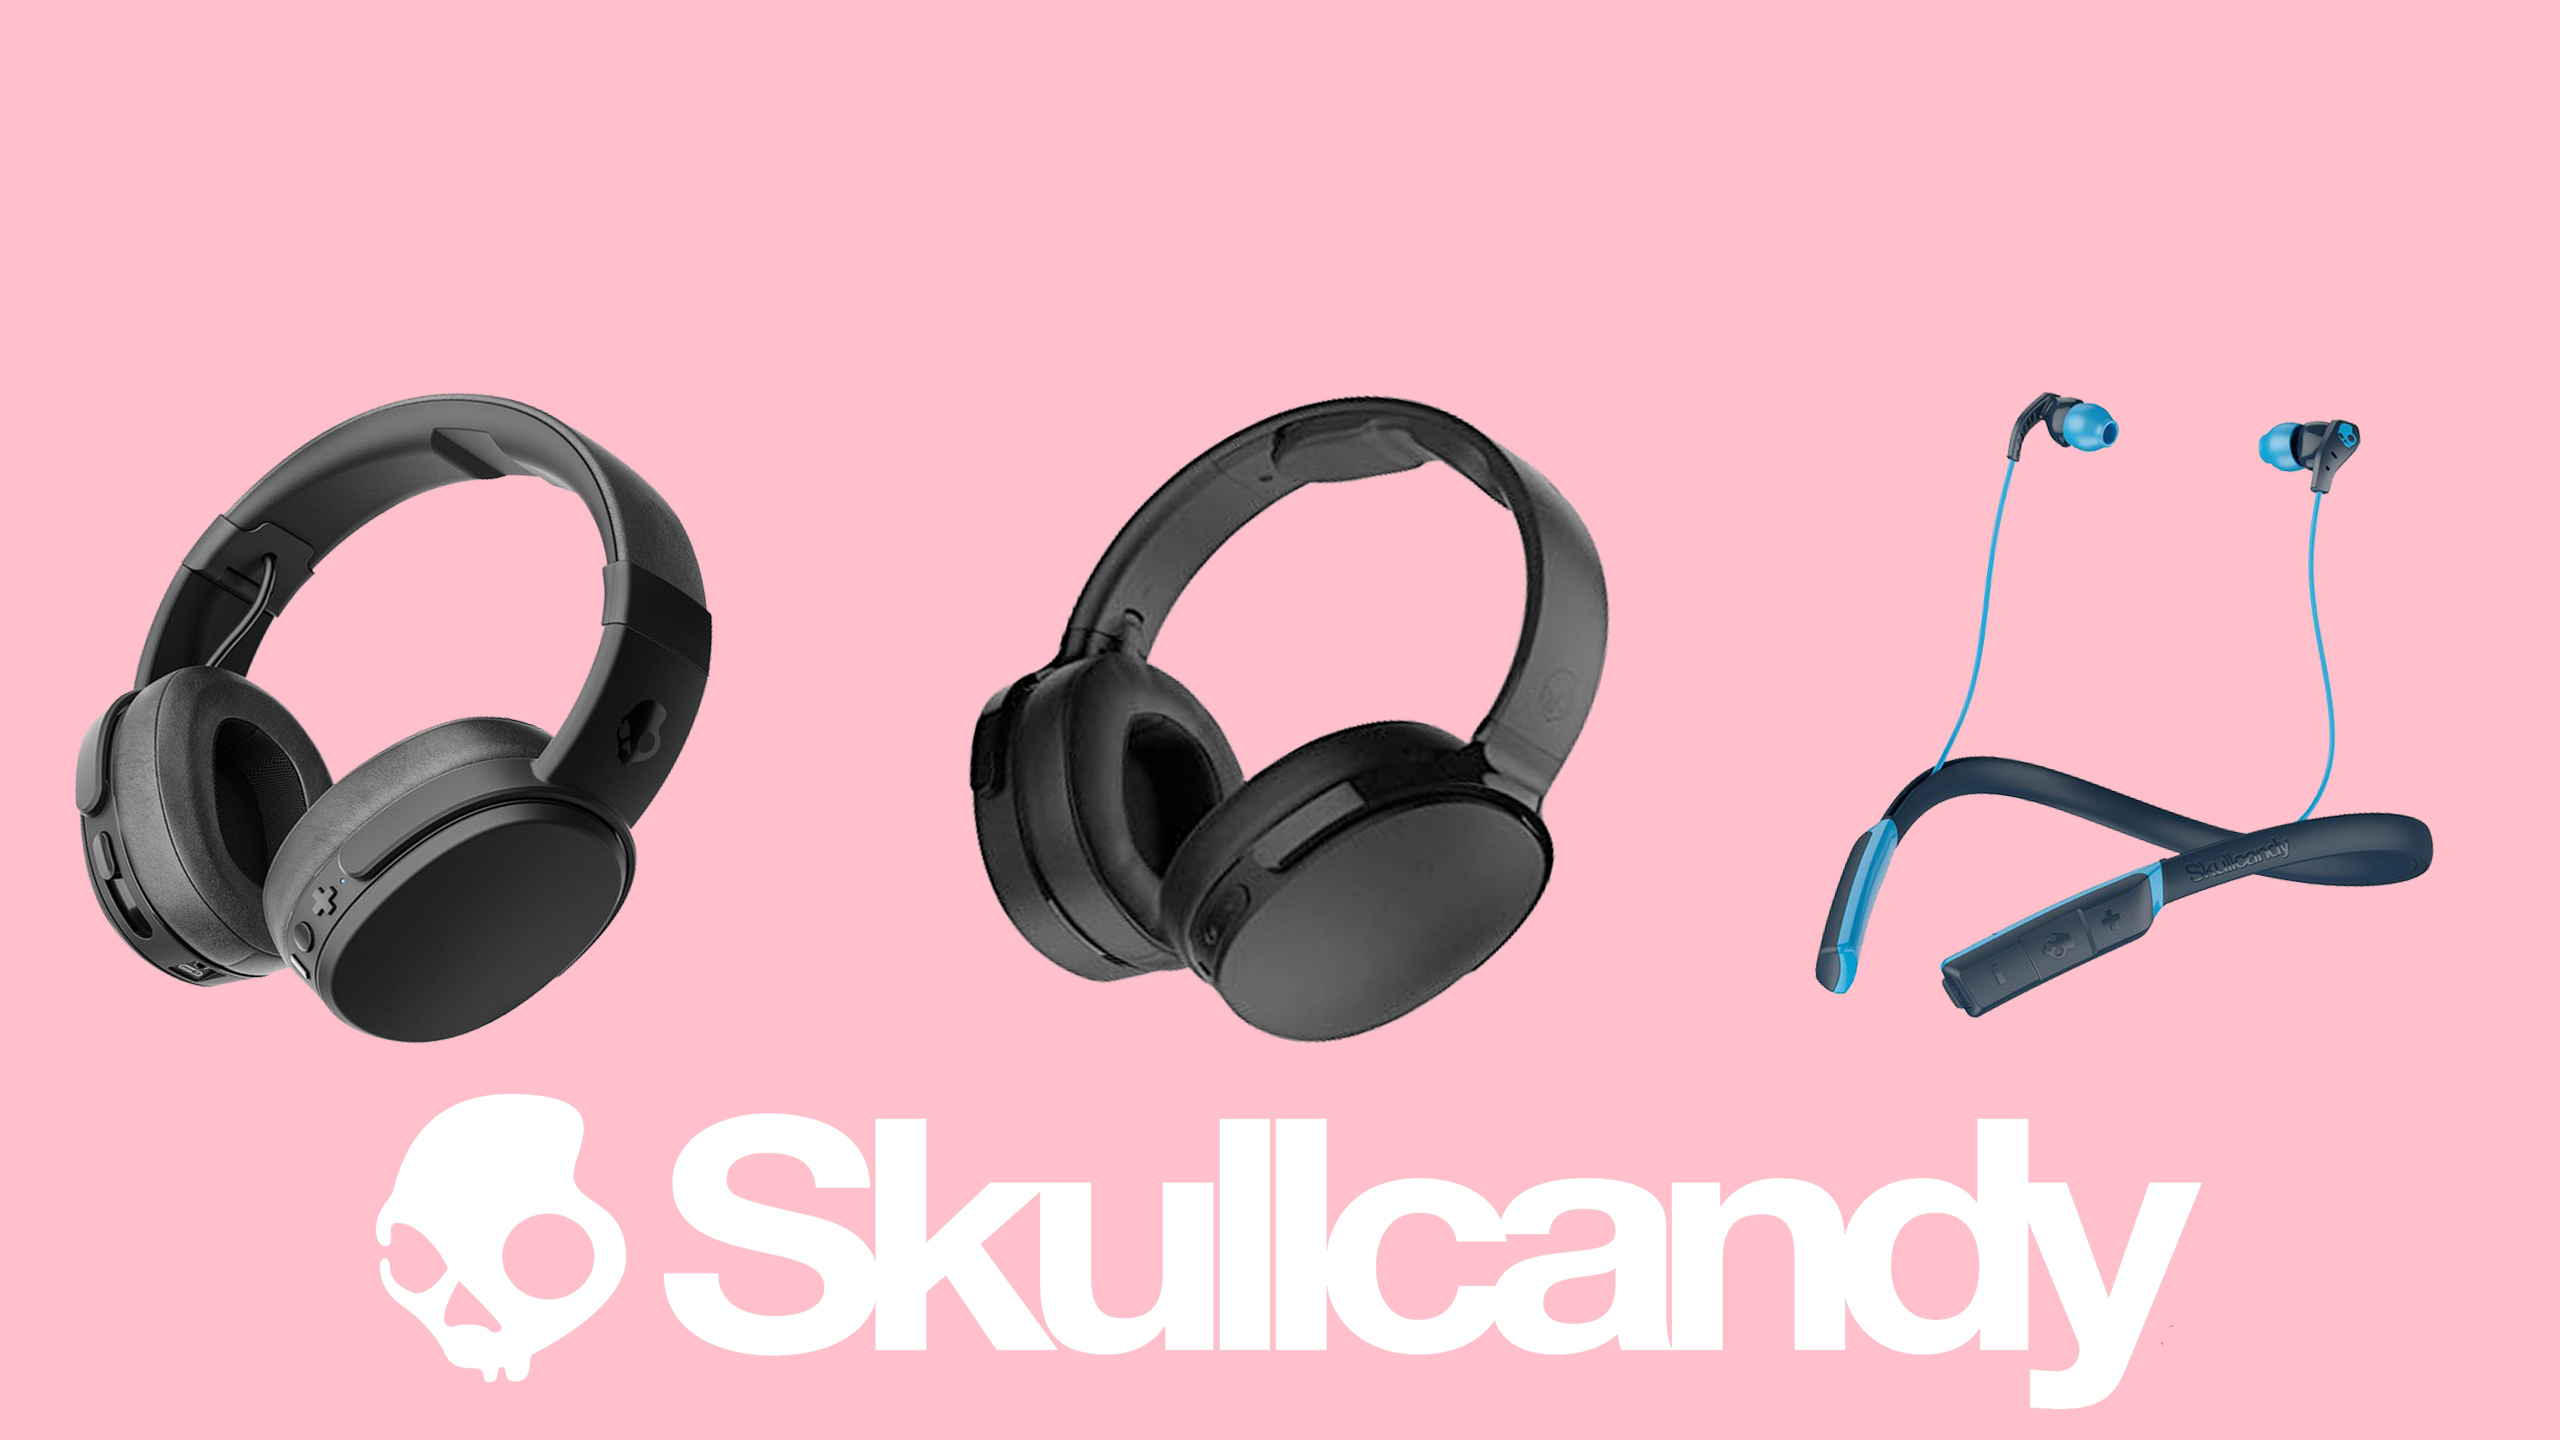 Skullcandy Headphones Price In Nepal And Where To Buy Enepsters